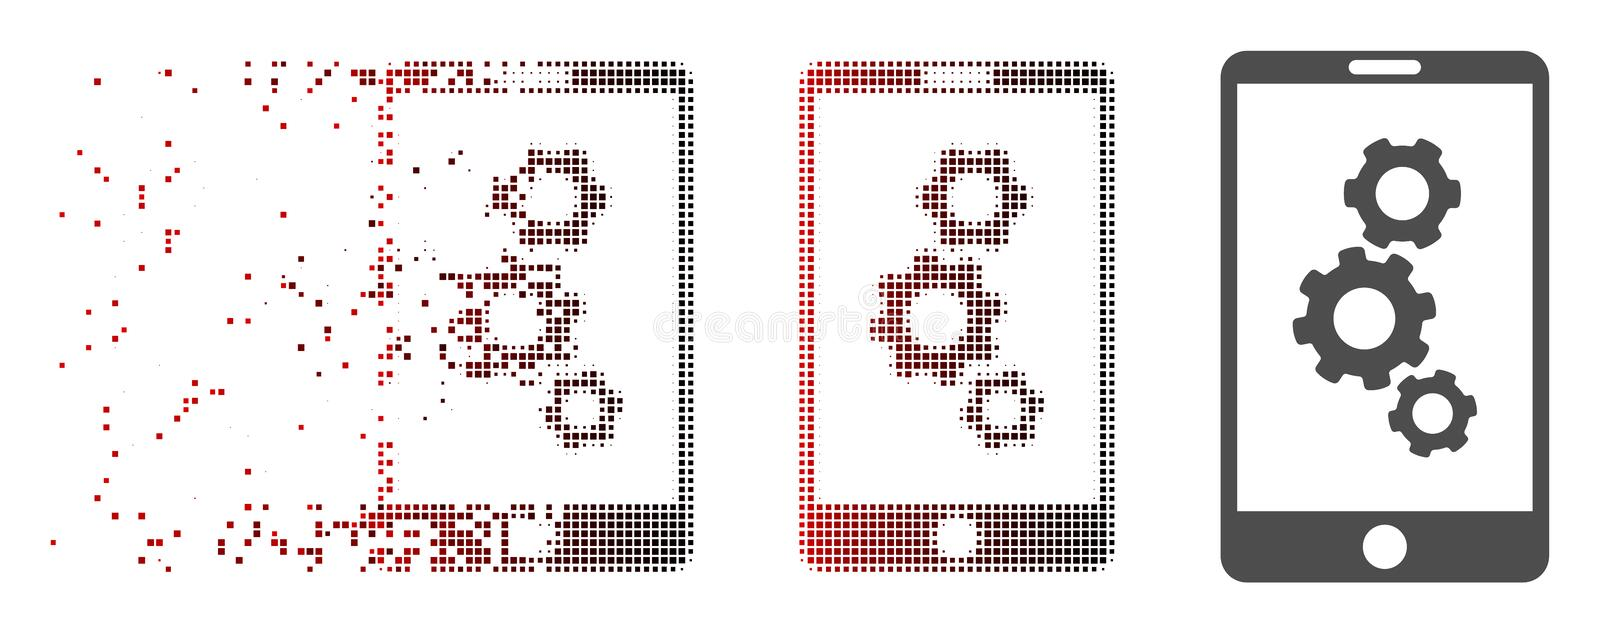 Shredded Pixel Halftone Smartphone Gears Icon. Vector smartphone gears icon in fractured, pixelated halftone with red to black horizontal gradient and undamaged stock illustration